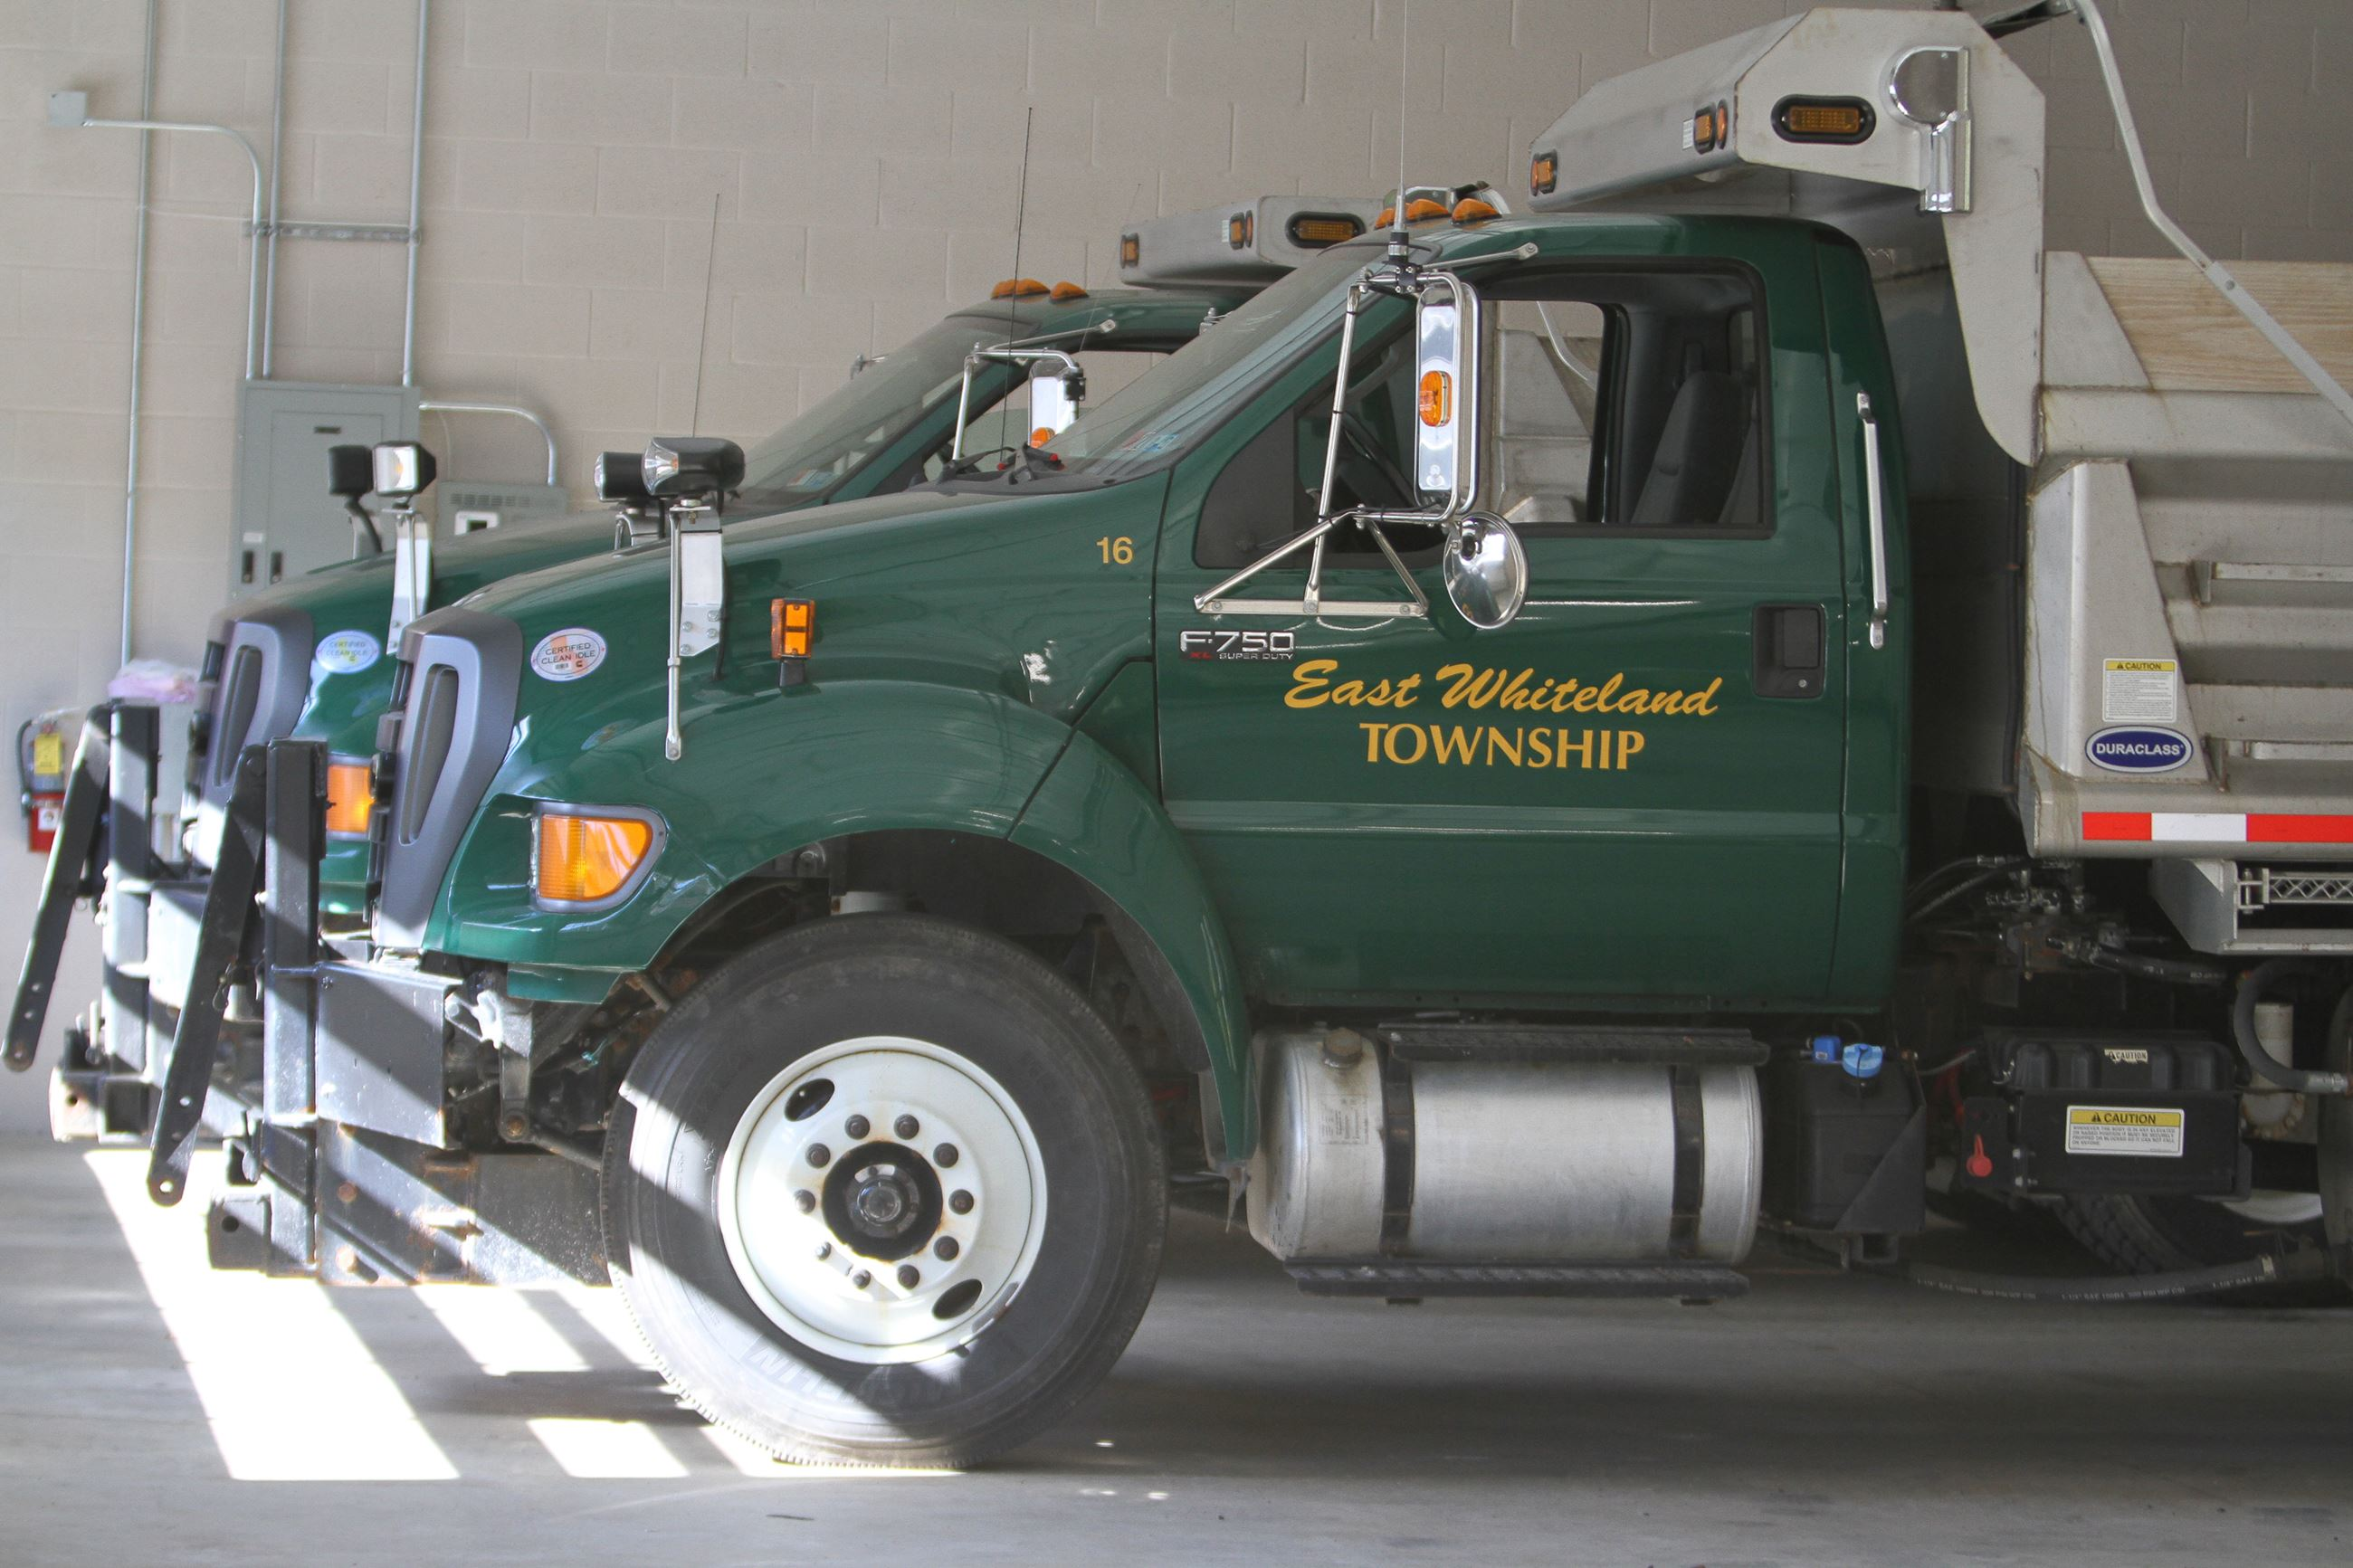 Trucks in Public Works Garage